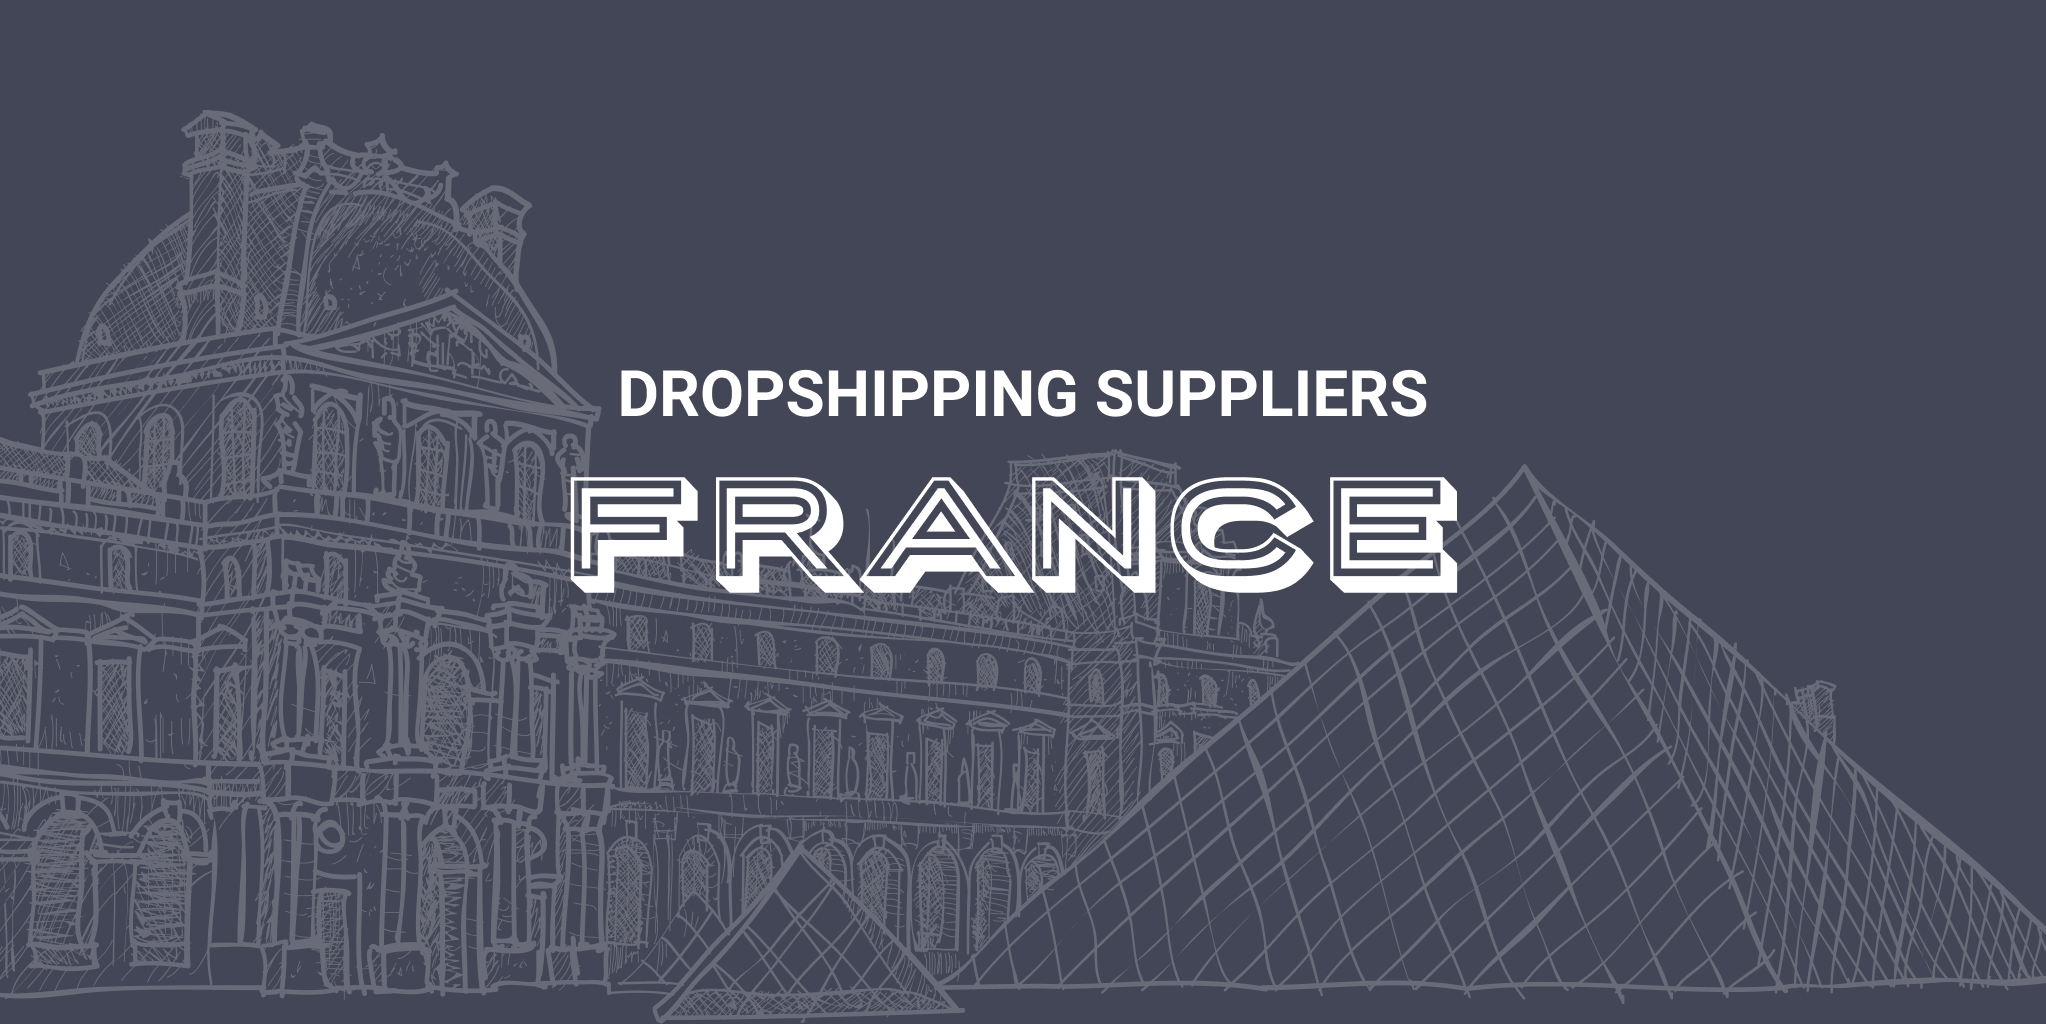 dropshipping suppliers in france